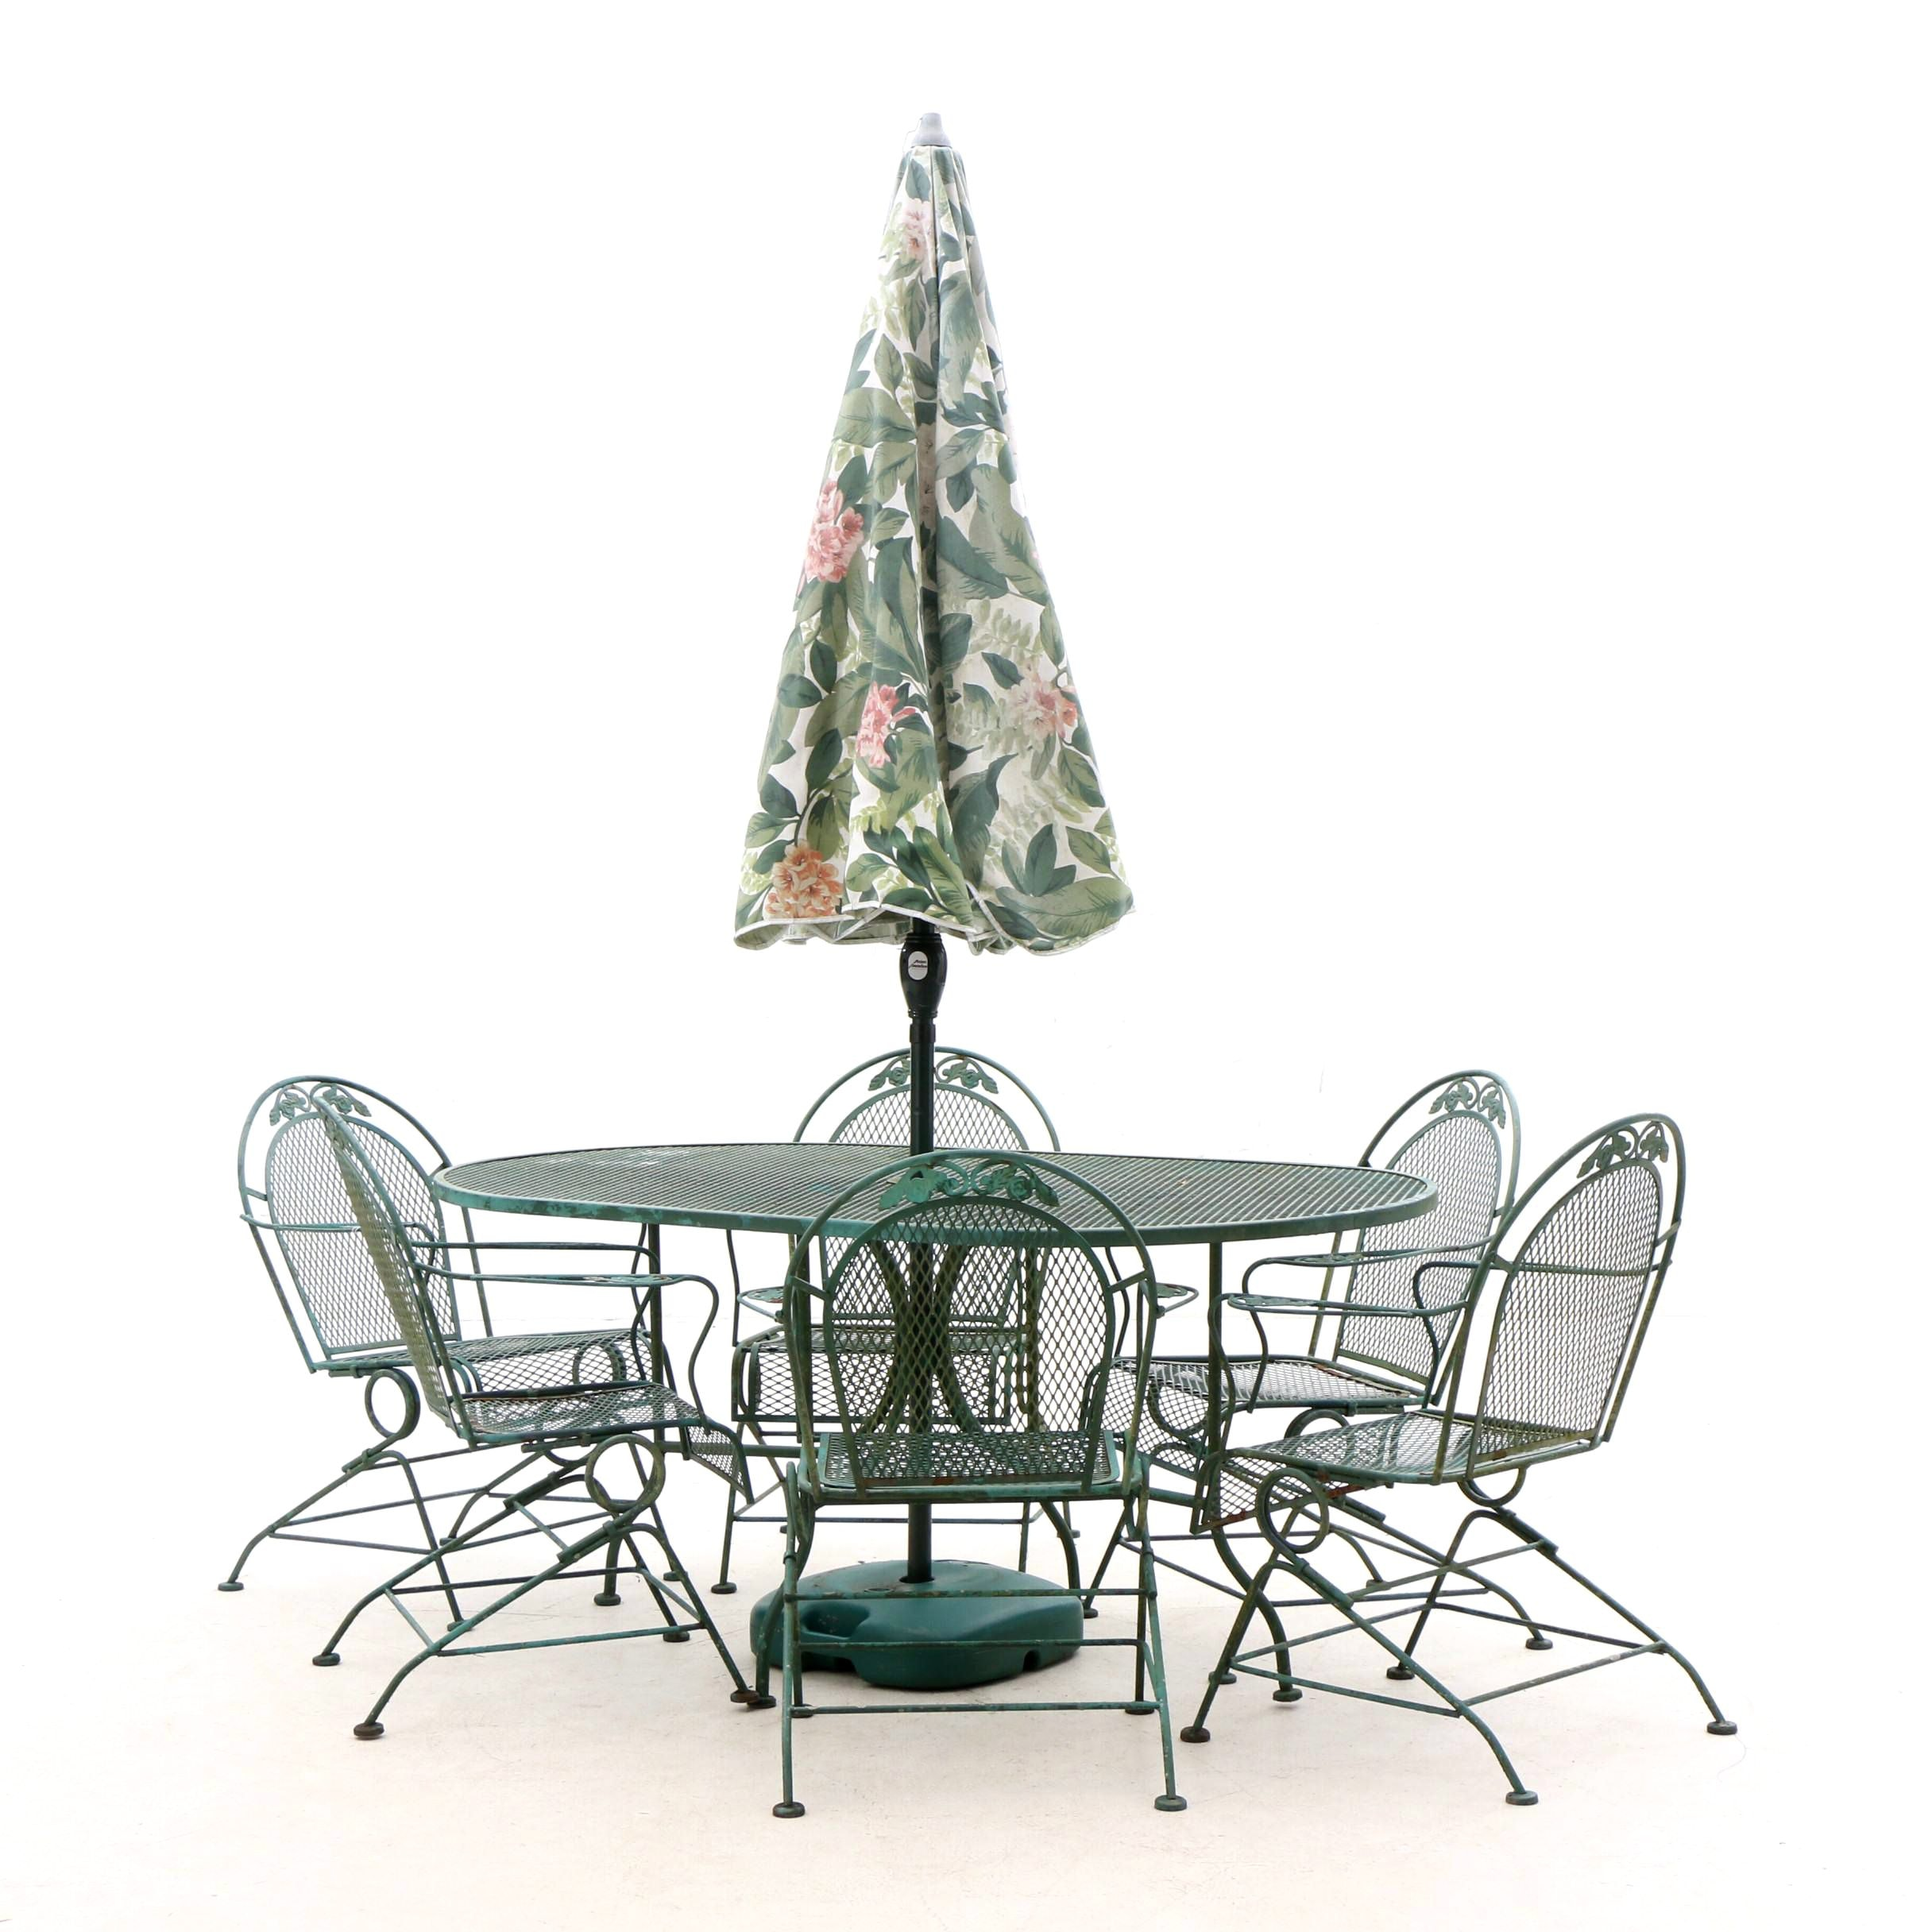 Cast Metal Patio Table, Chairs and Floral Sun Umbrella